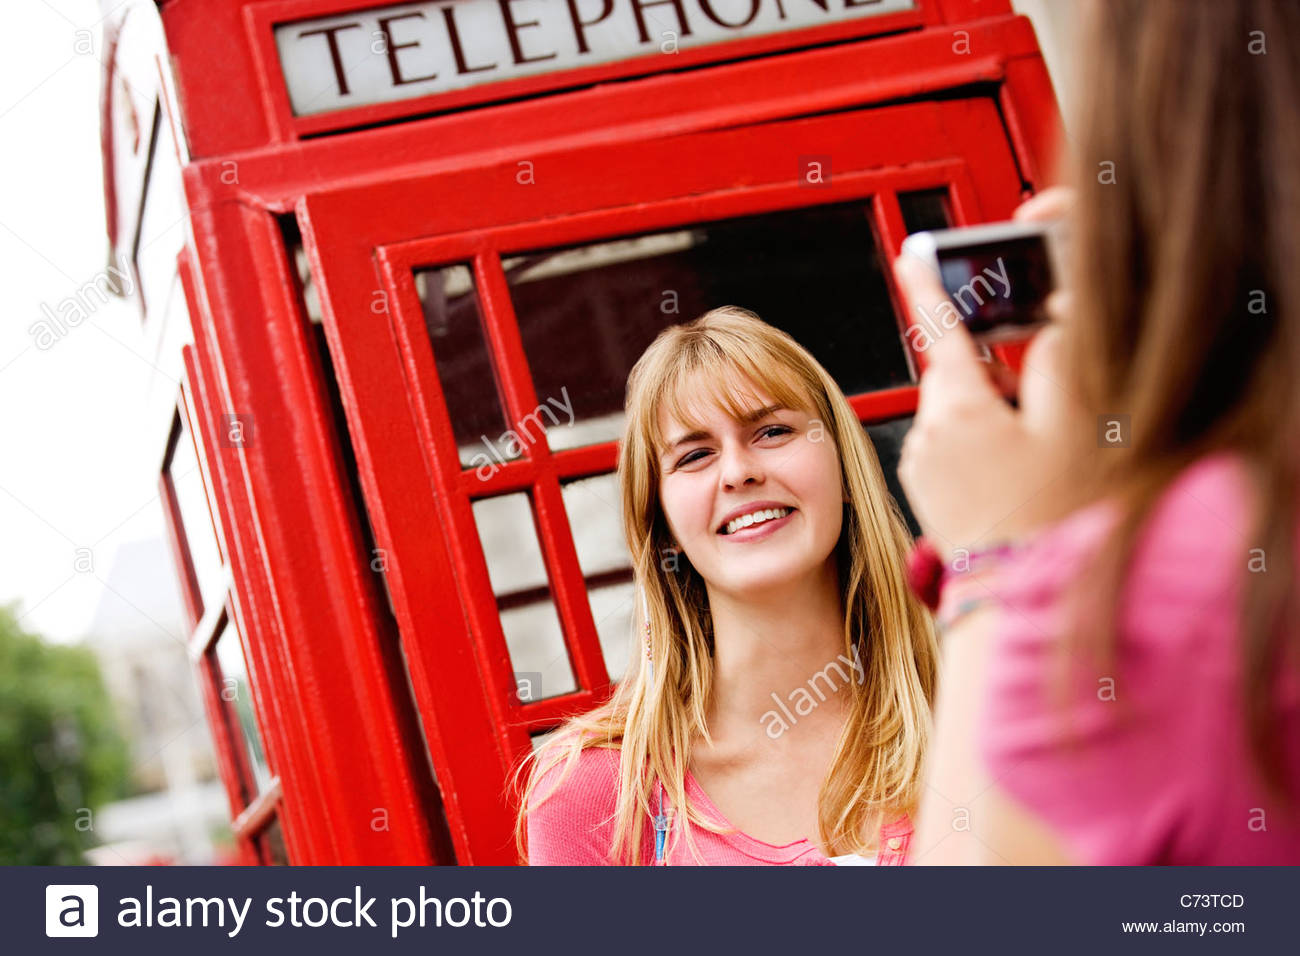 A teenage girl taking a photograph of her friend in front of a telephone box - Stock Image